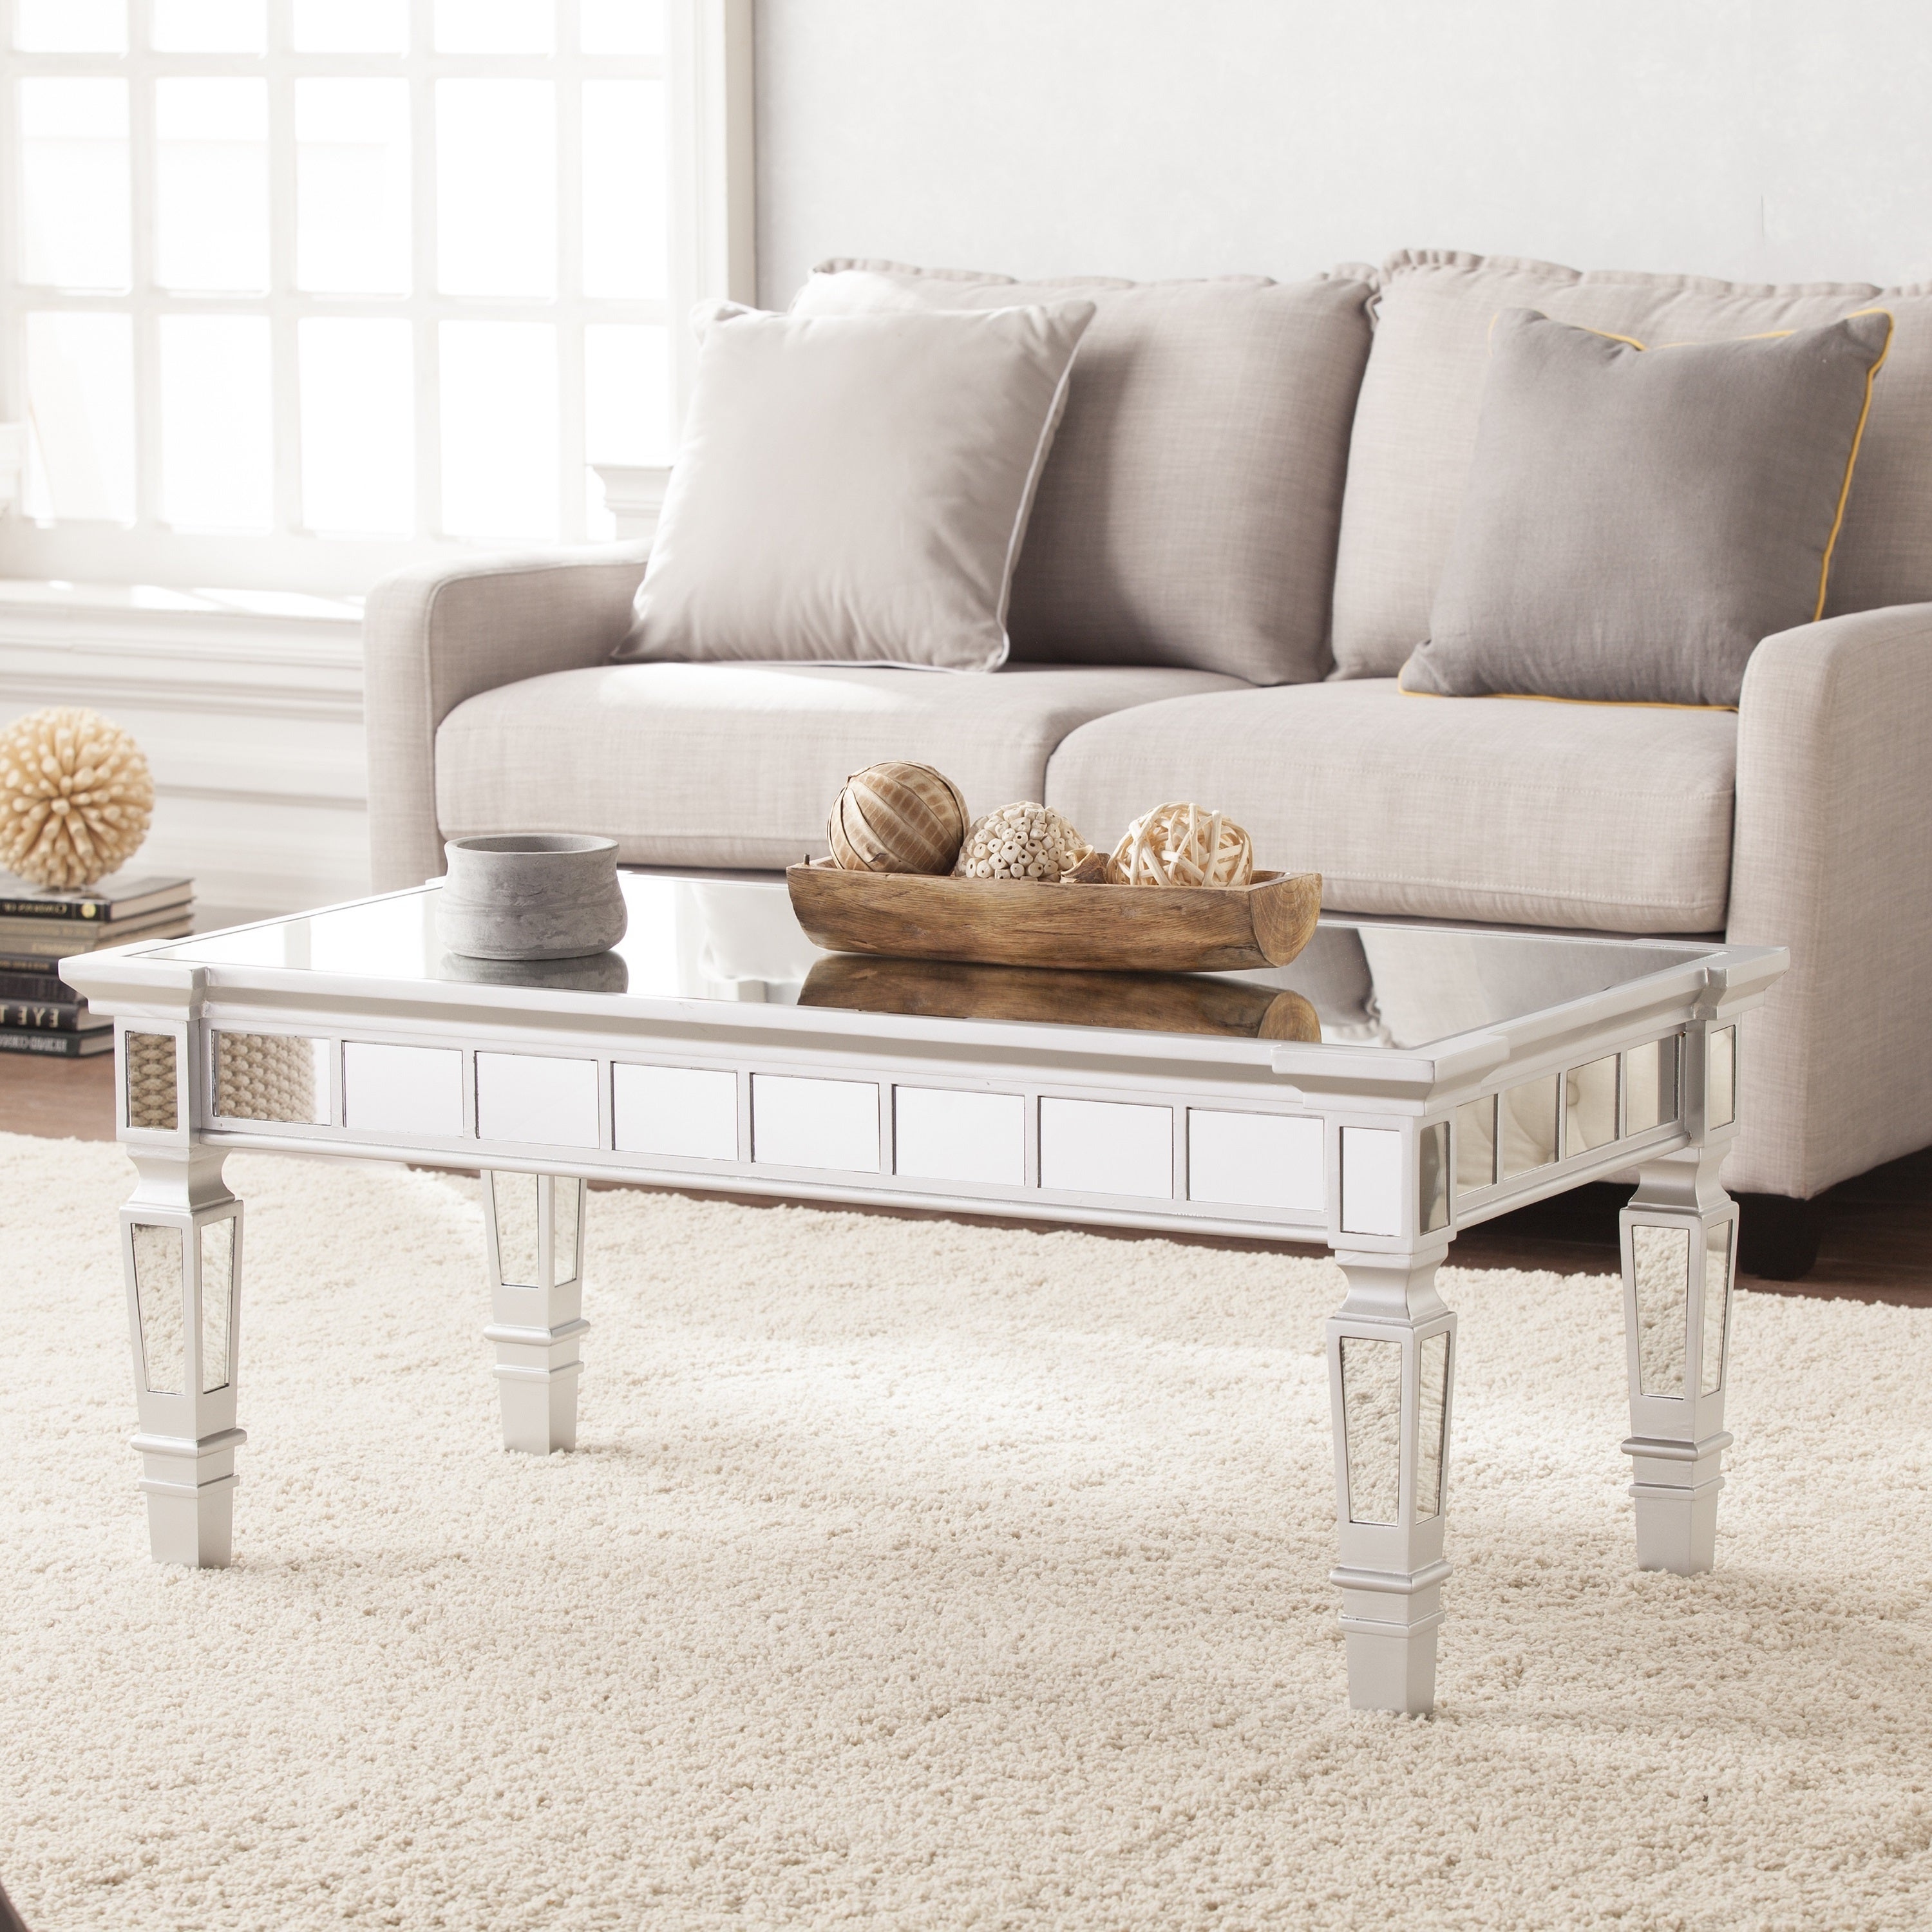 Silver Orchid Olivia Glam Mirrored Rectangular Cocktail Table – Matte Silver For Well Known Silver Orchid Olivia Glam Mirrored Round Cocktail Tables (View 10 of 20)